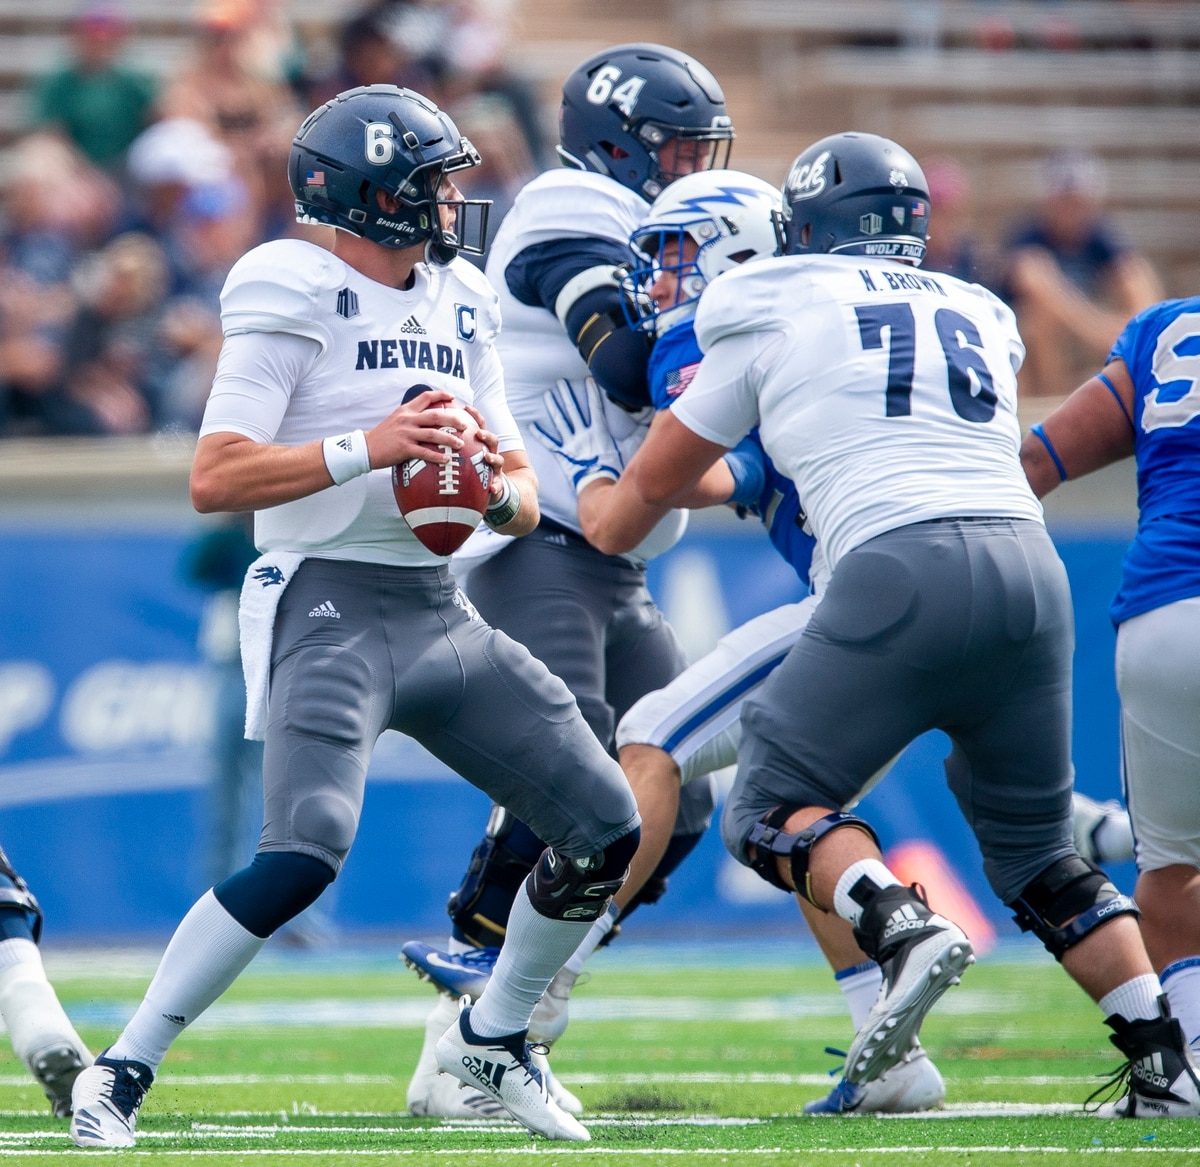 Gangi S 4 Td Passes Carry Nevada Past Air Force 28 25